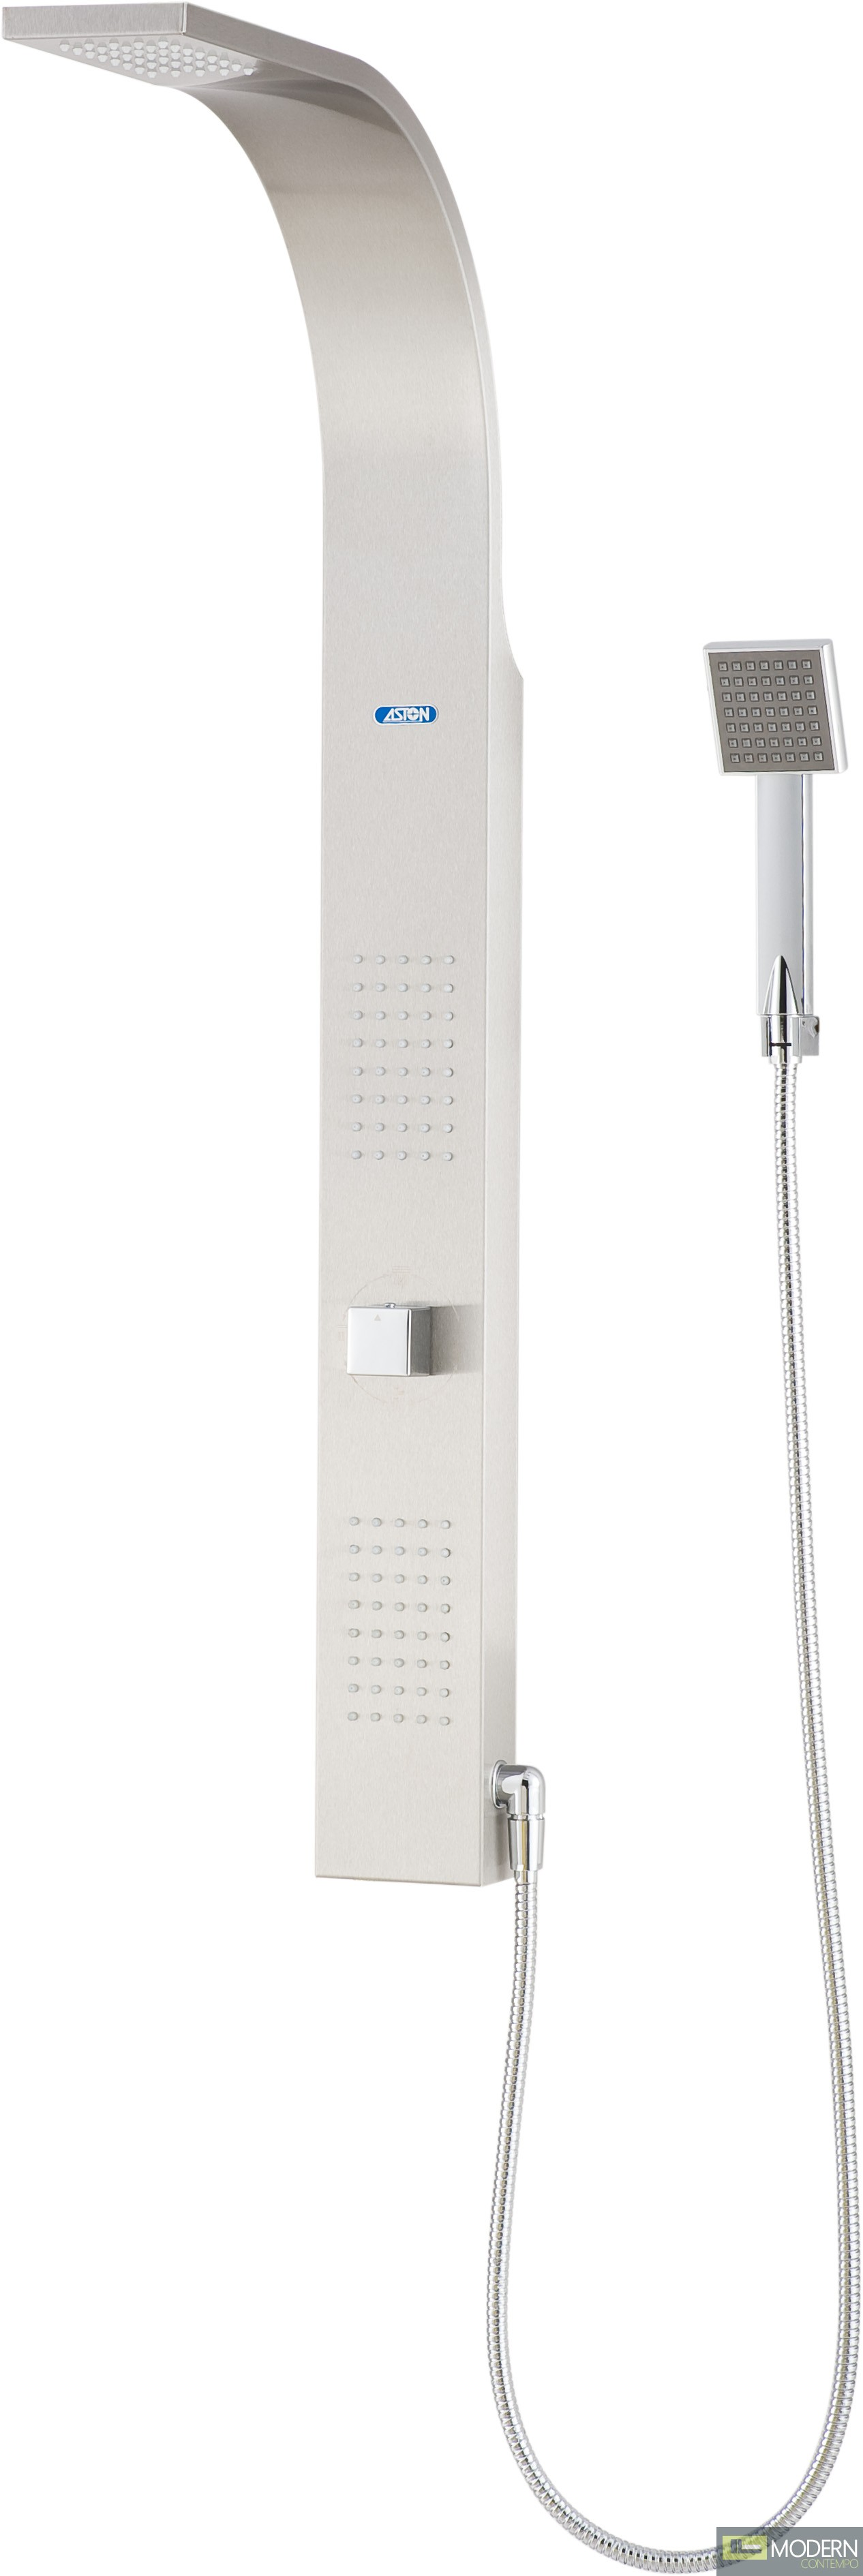 Retrofit Shower Panel System with Two Jet Panels in Stainless Steel